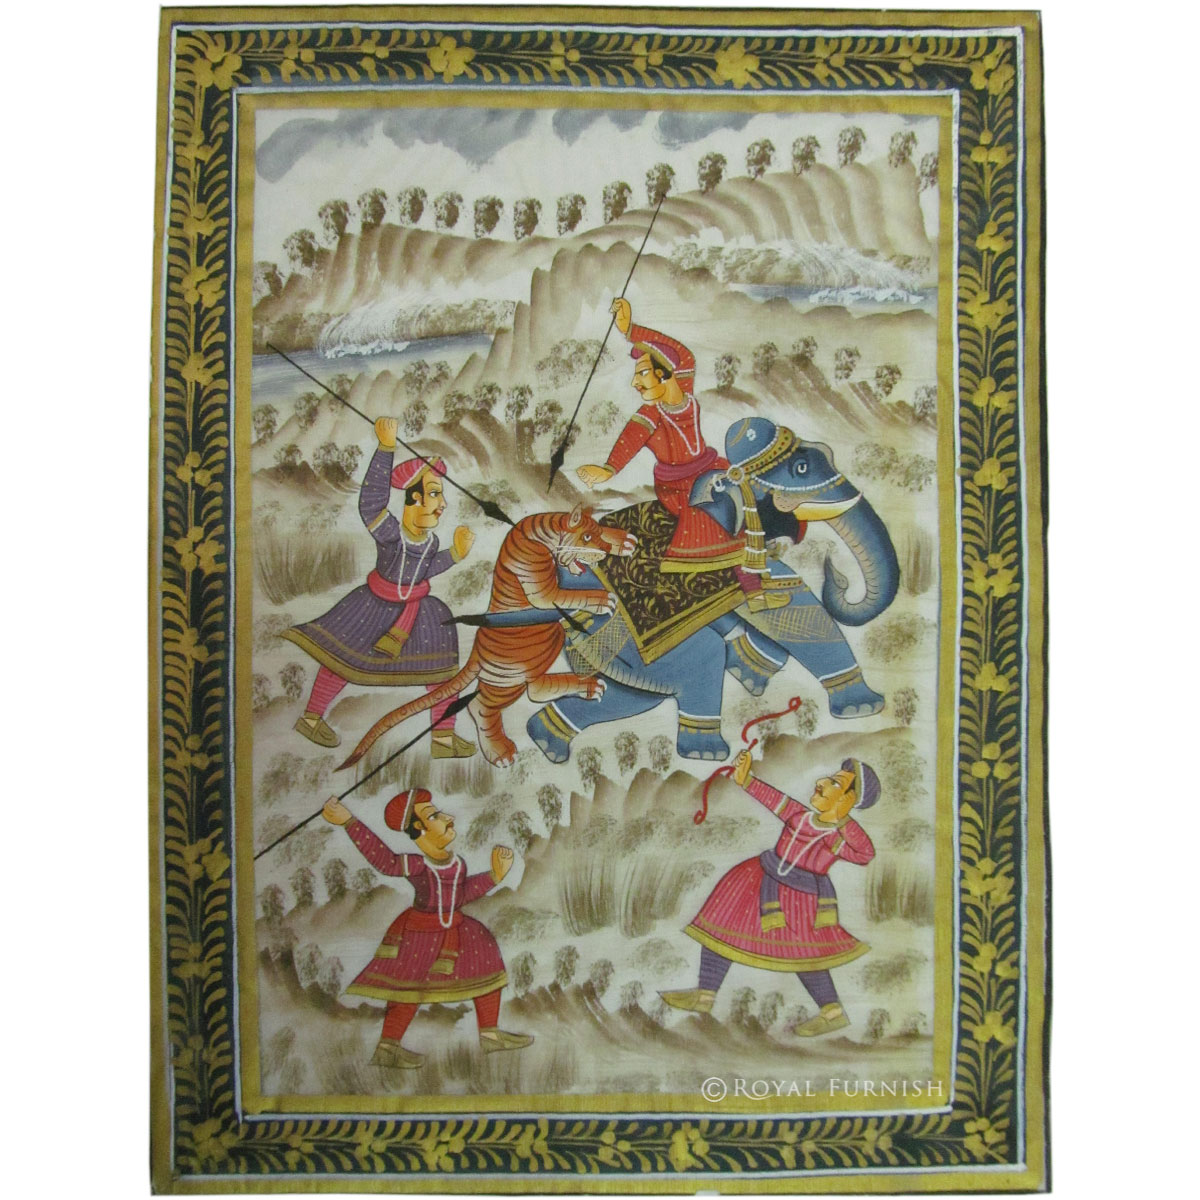 Rajasthani Mughal Miniature Painting Features Animals